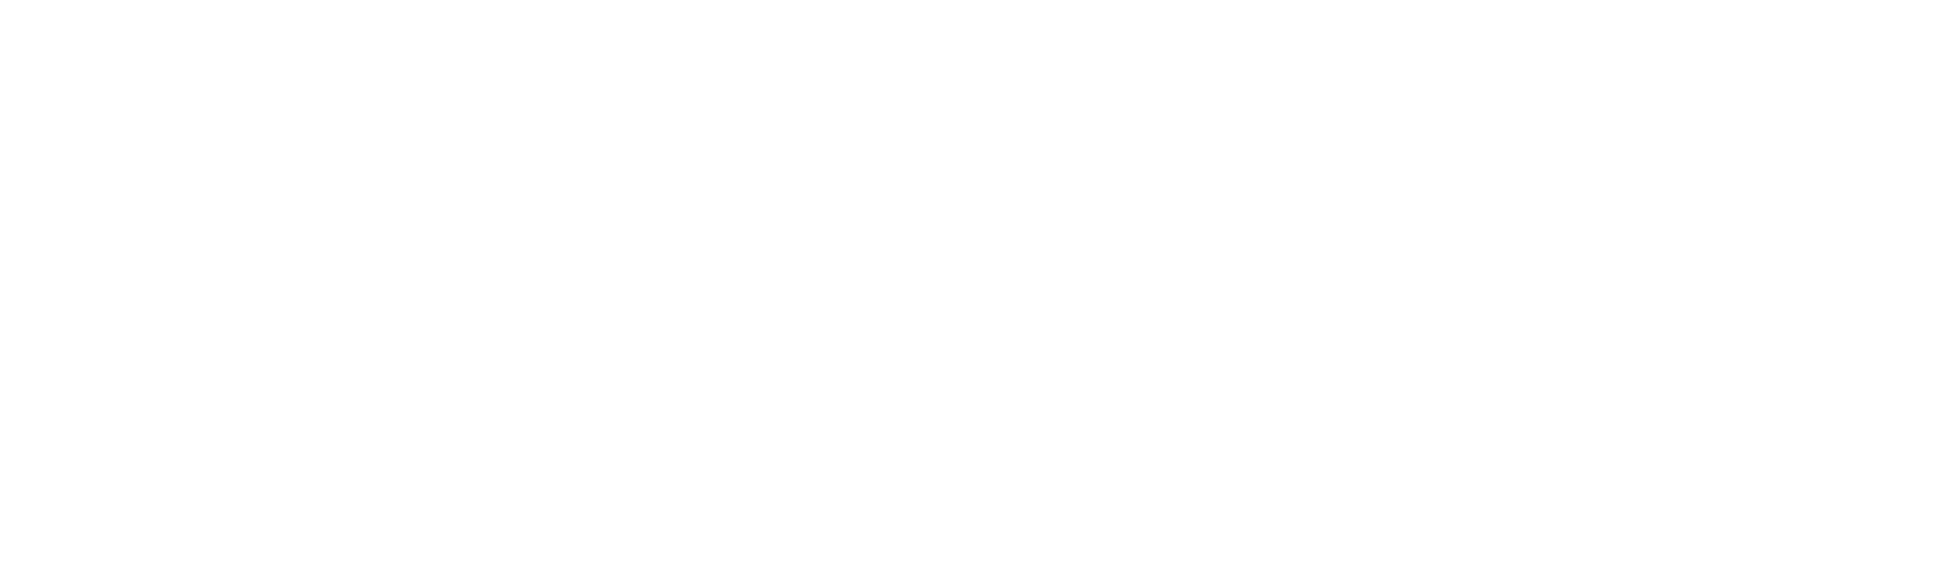 Aiquidox Web Design Co.